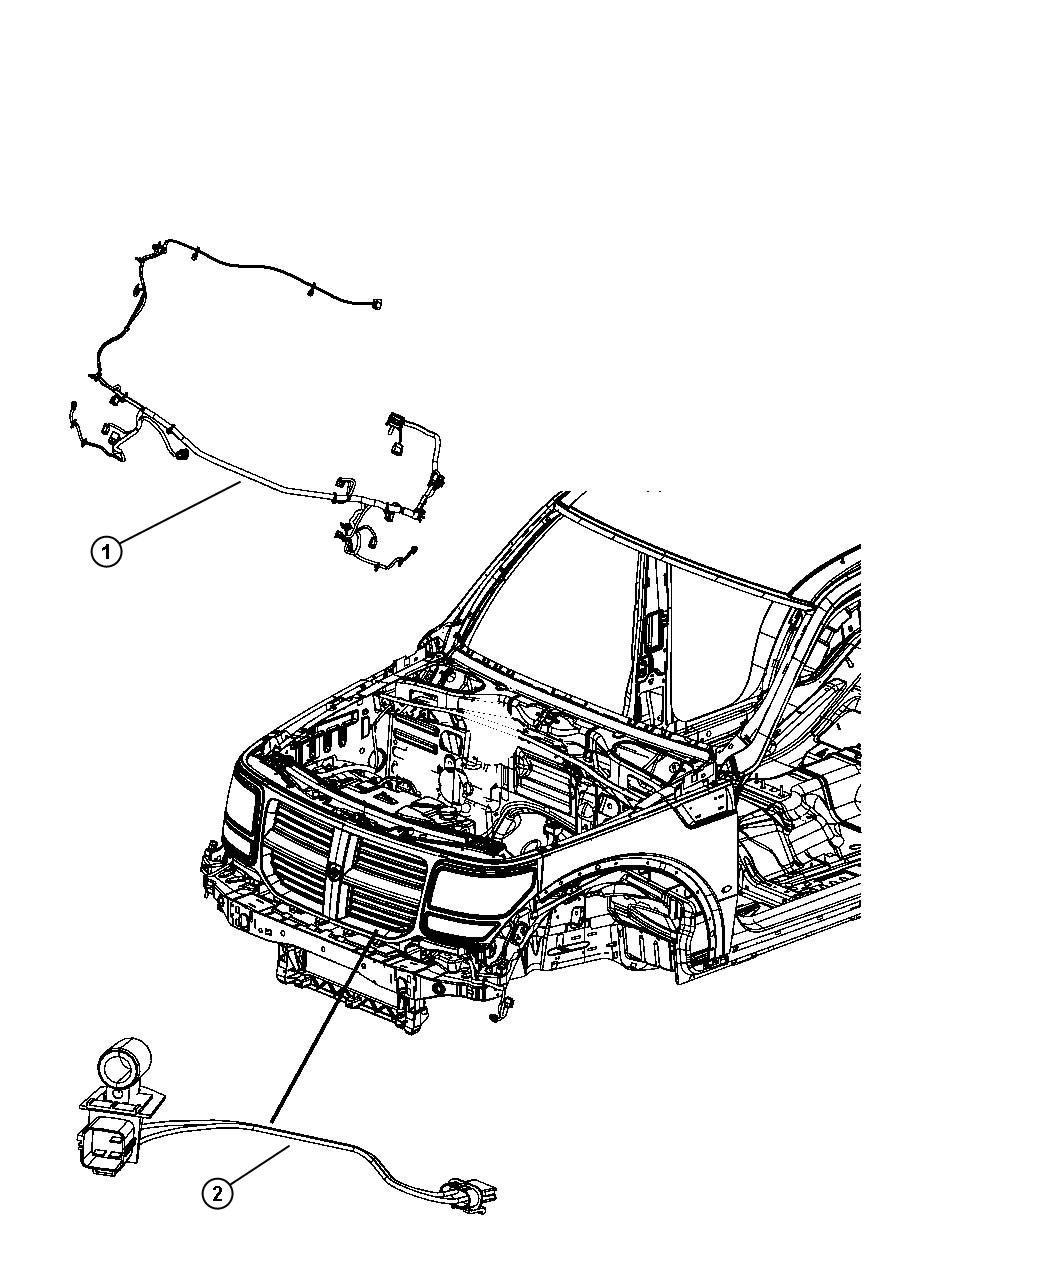 1980 Jeep Cj7 Wiring Diagram Free Image About Wiring Diagram And